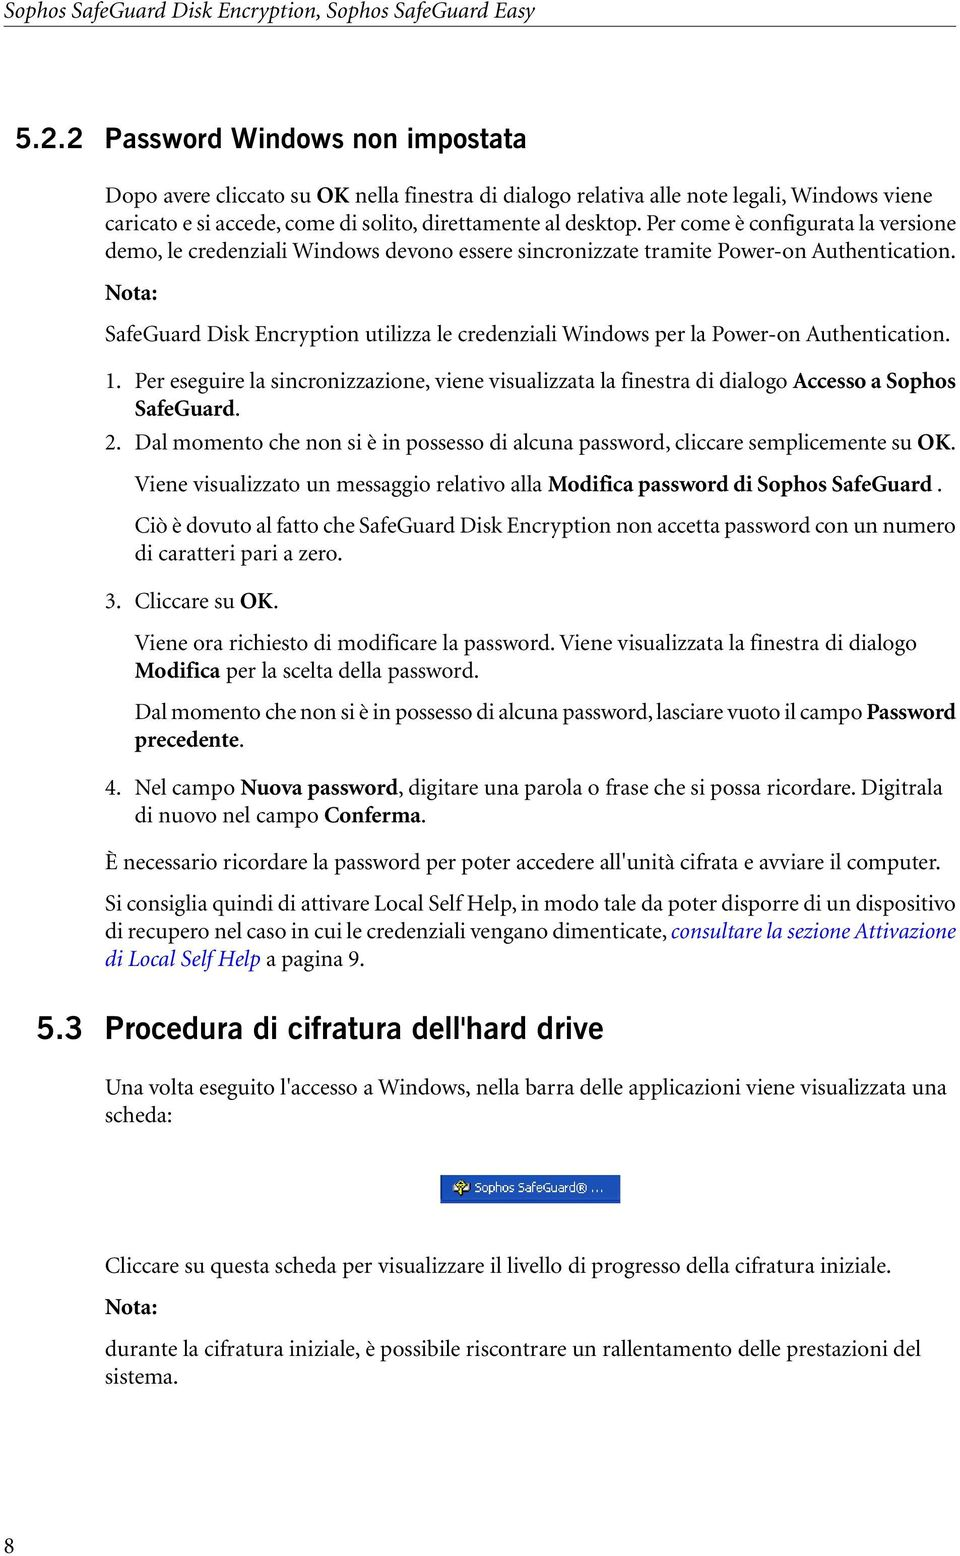 Per come è configurata la versione demo, le credenziali Windows devono essere sincronizzate tramite Power-on Authentication.